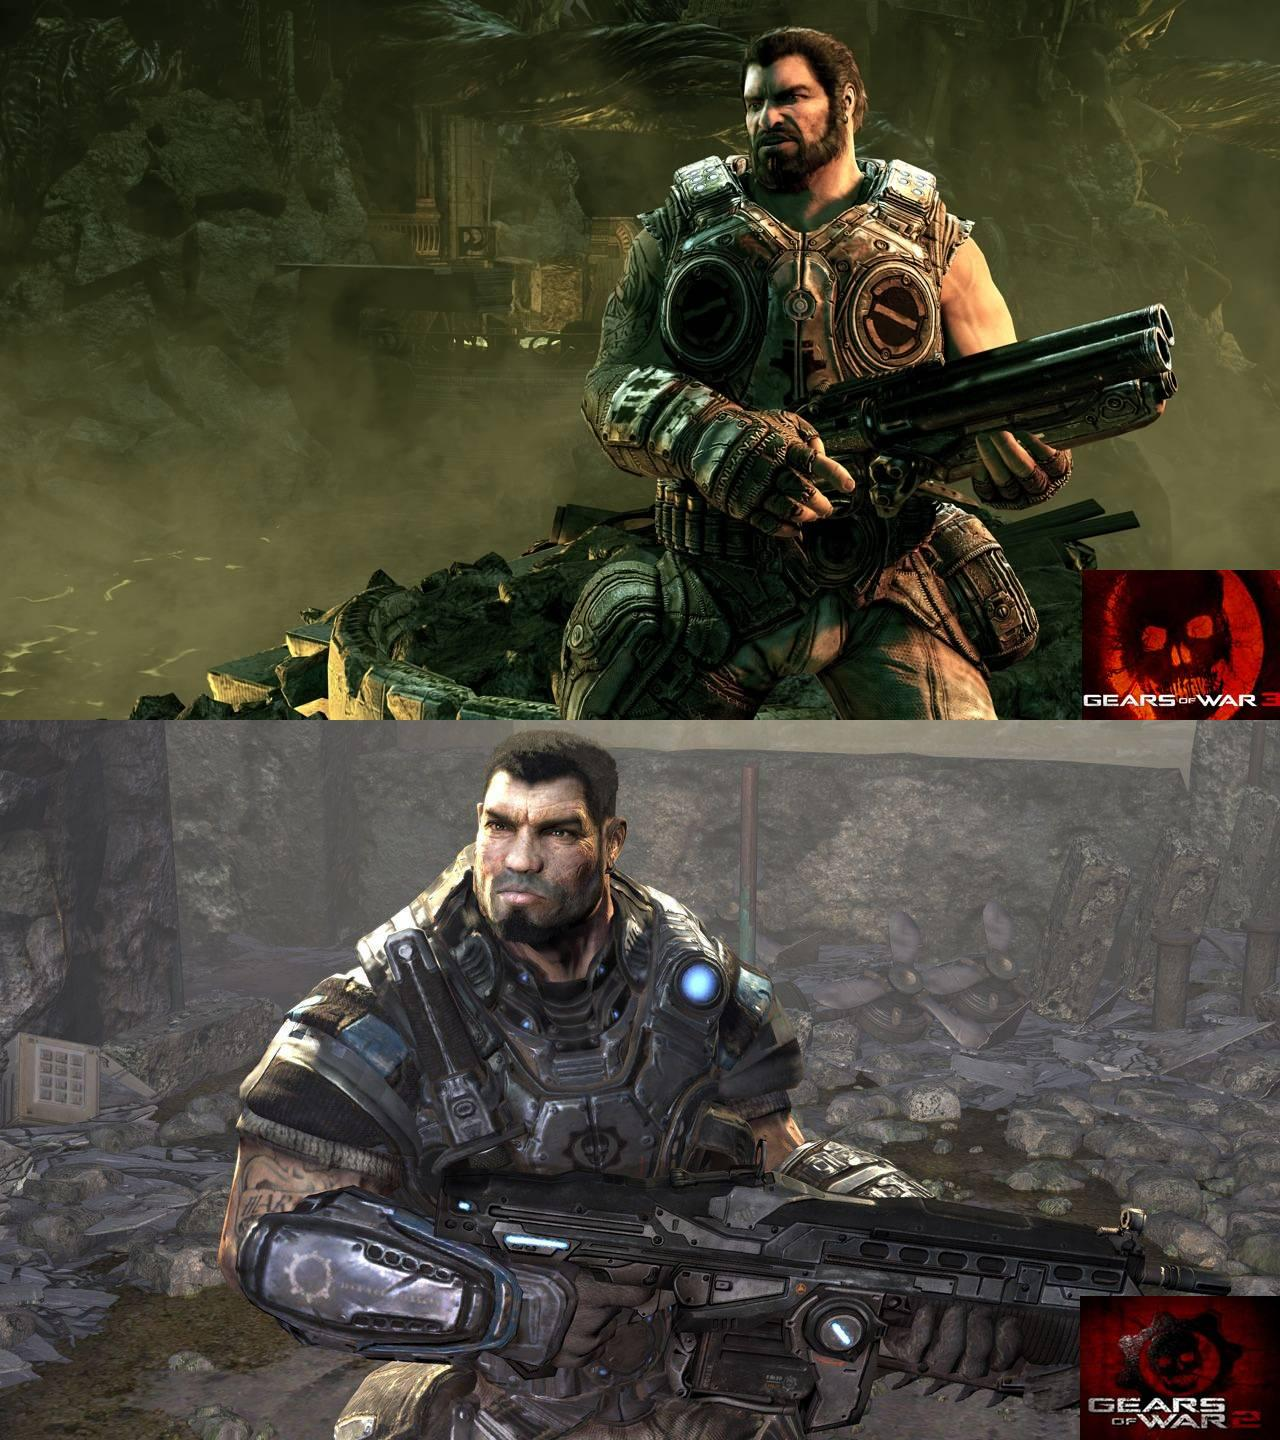 Gears Of War 3 Versus Gears Of War 2: HD Screenshot